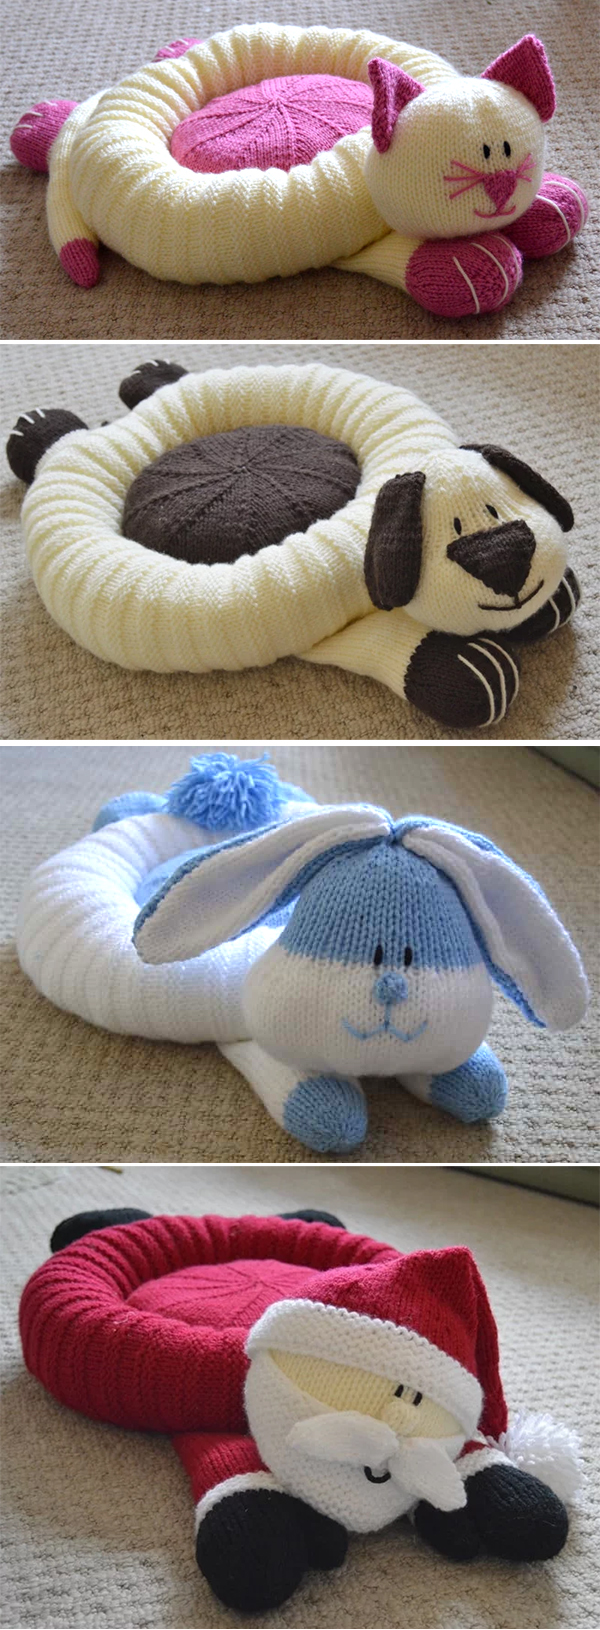 Knitting Pattern for Pet Snuggler Beds or Cushions